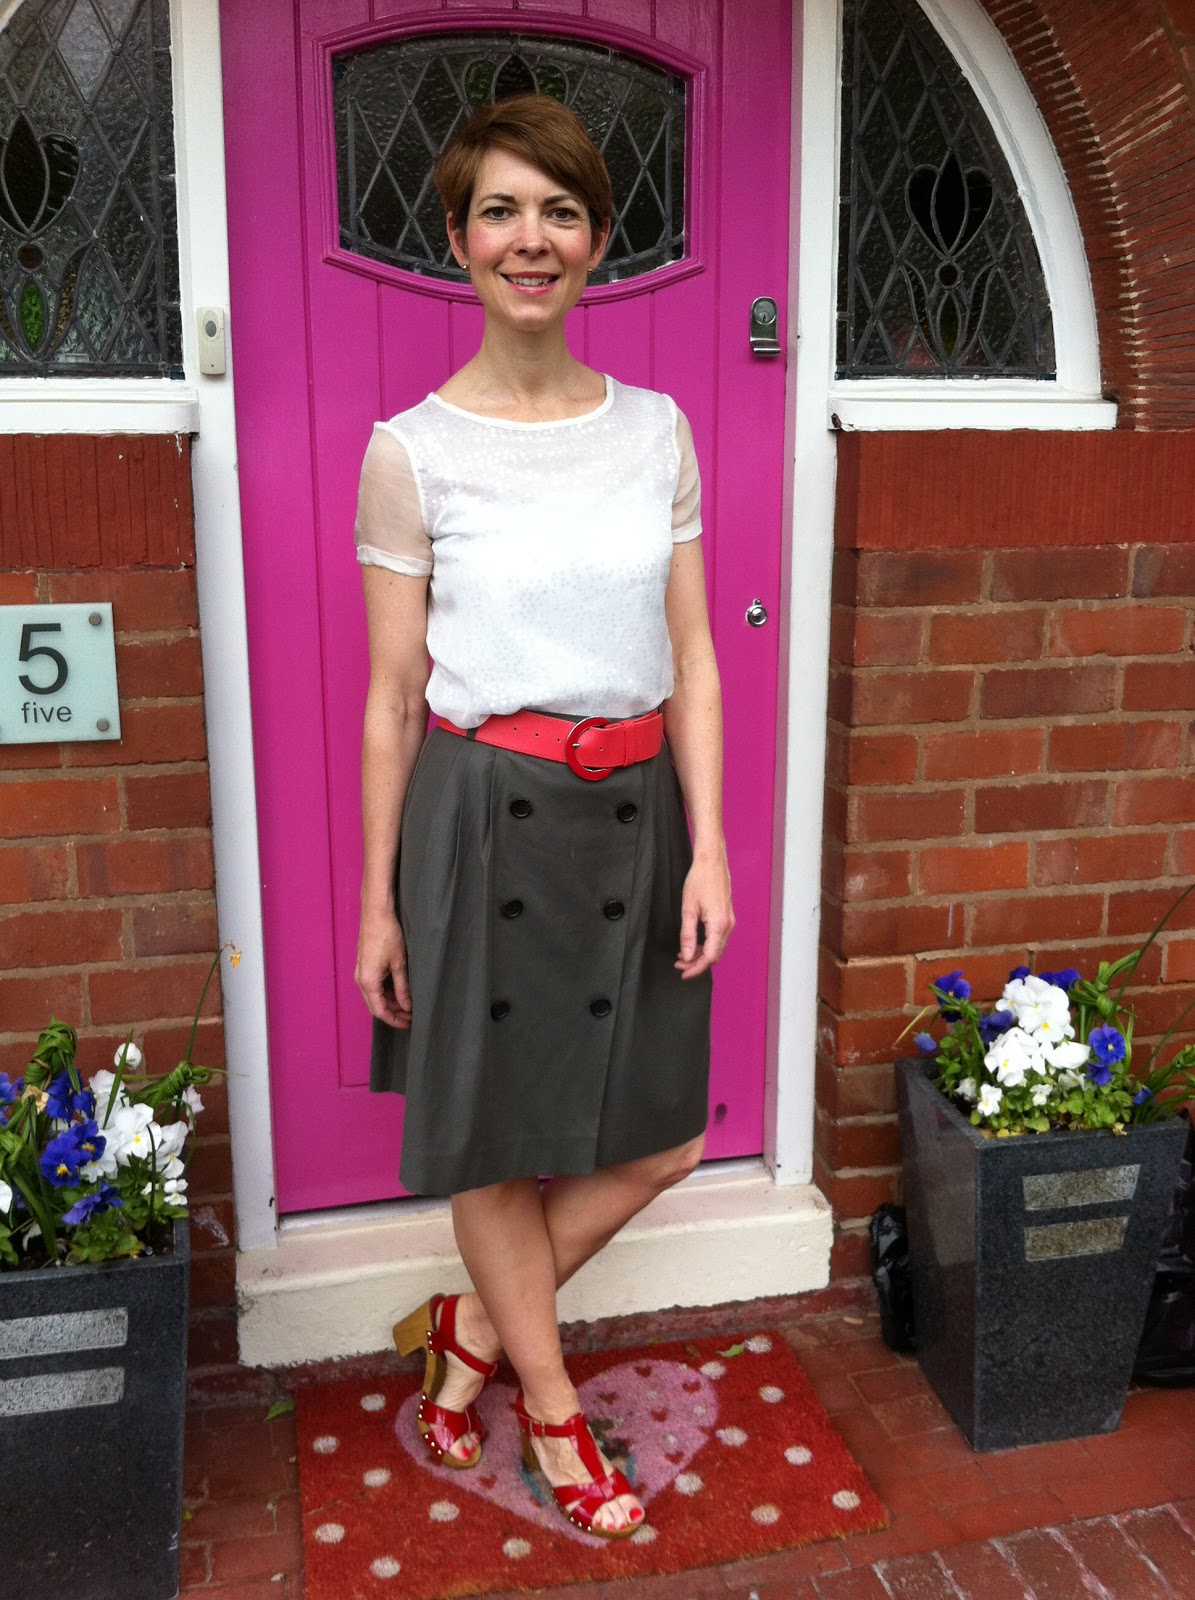 c3cf0c14b For a skirt along similar lines, there's this Hobbs skirt (£69). It's an  easy fabric in the sense that it's not too far a departure from jeans –  it's just ...